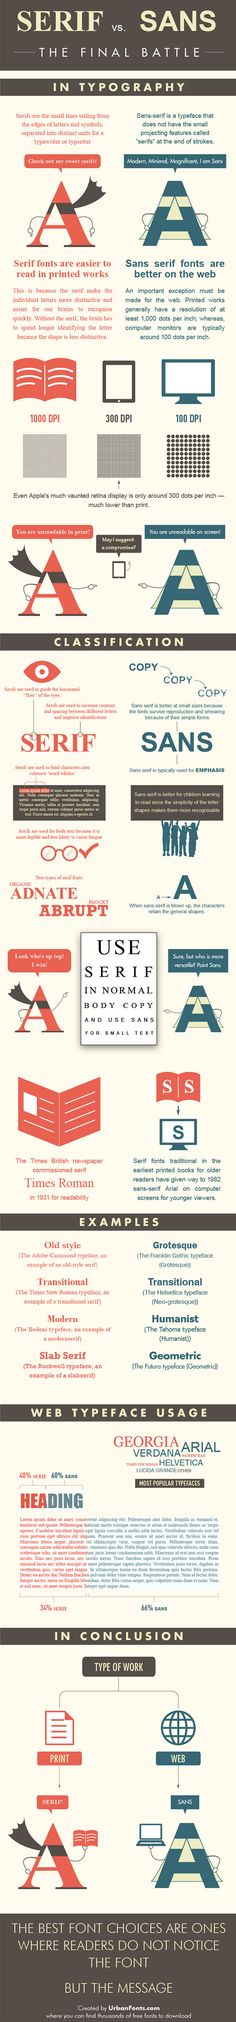 Serif vs Sans-Serif Fonts [infographic] - An Infographic from BestInfographics.co